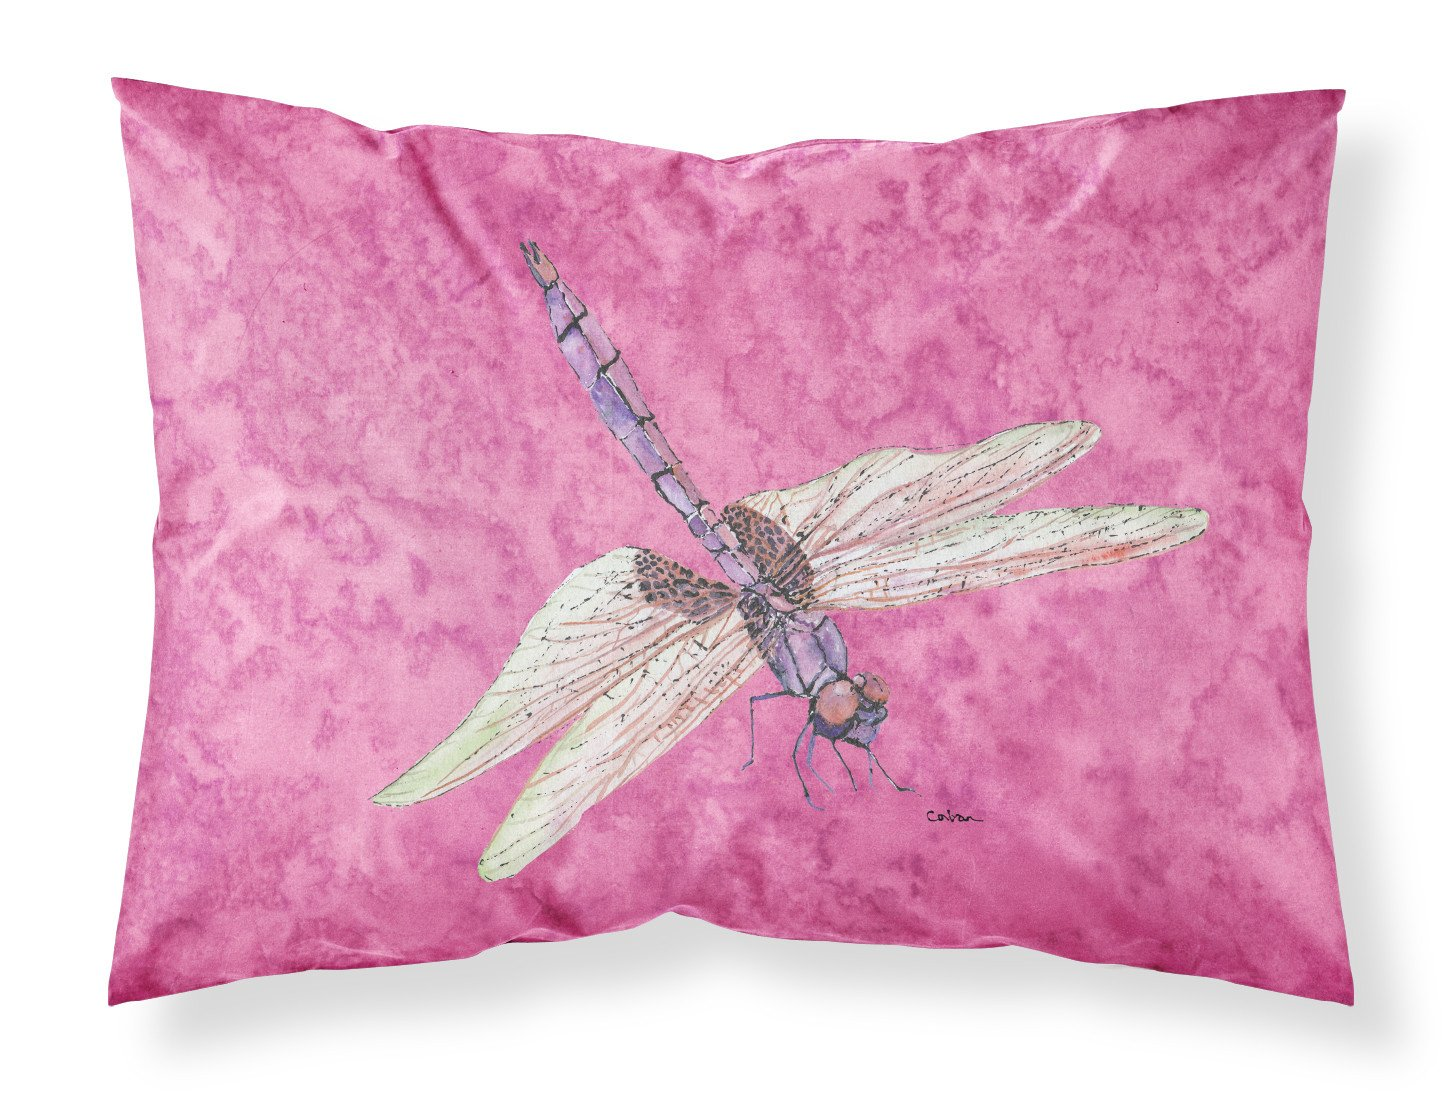 Buy this Dragonfly on Pink Moisture wicking Fabric standard pillowcase